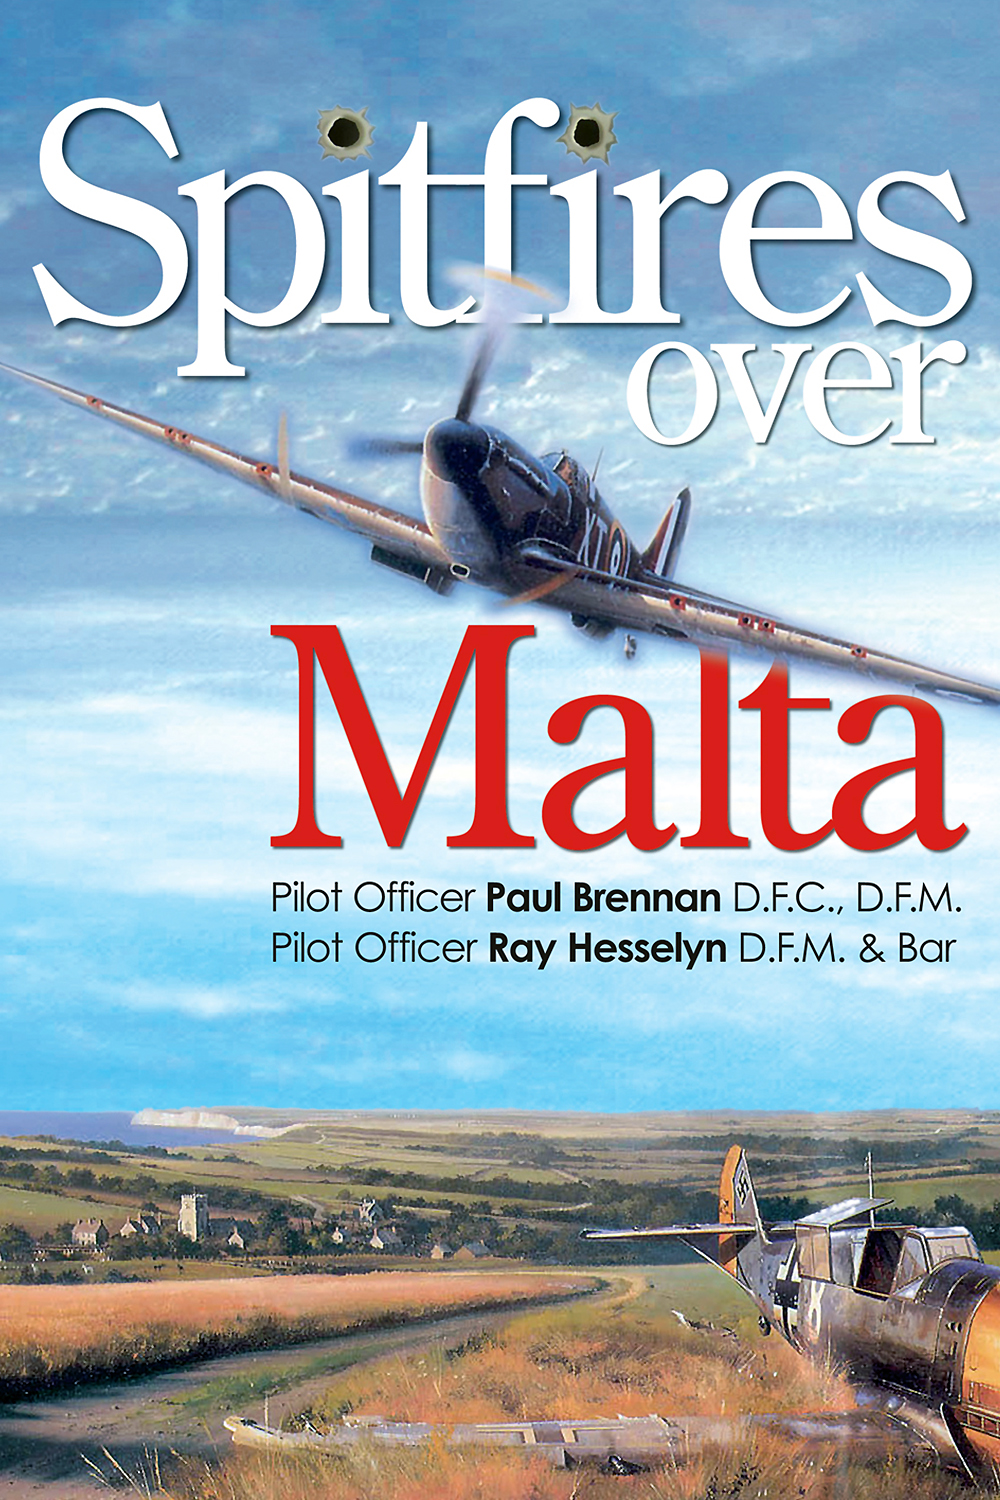 Spitfires over Malta by Paul Brennan and Ray Hesselyn